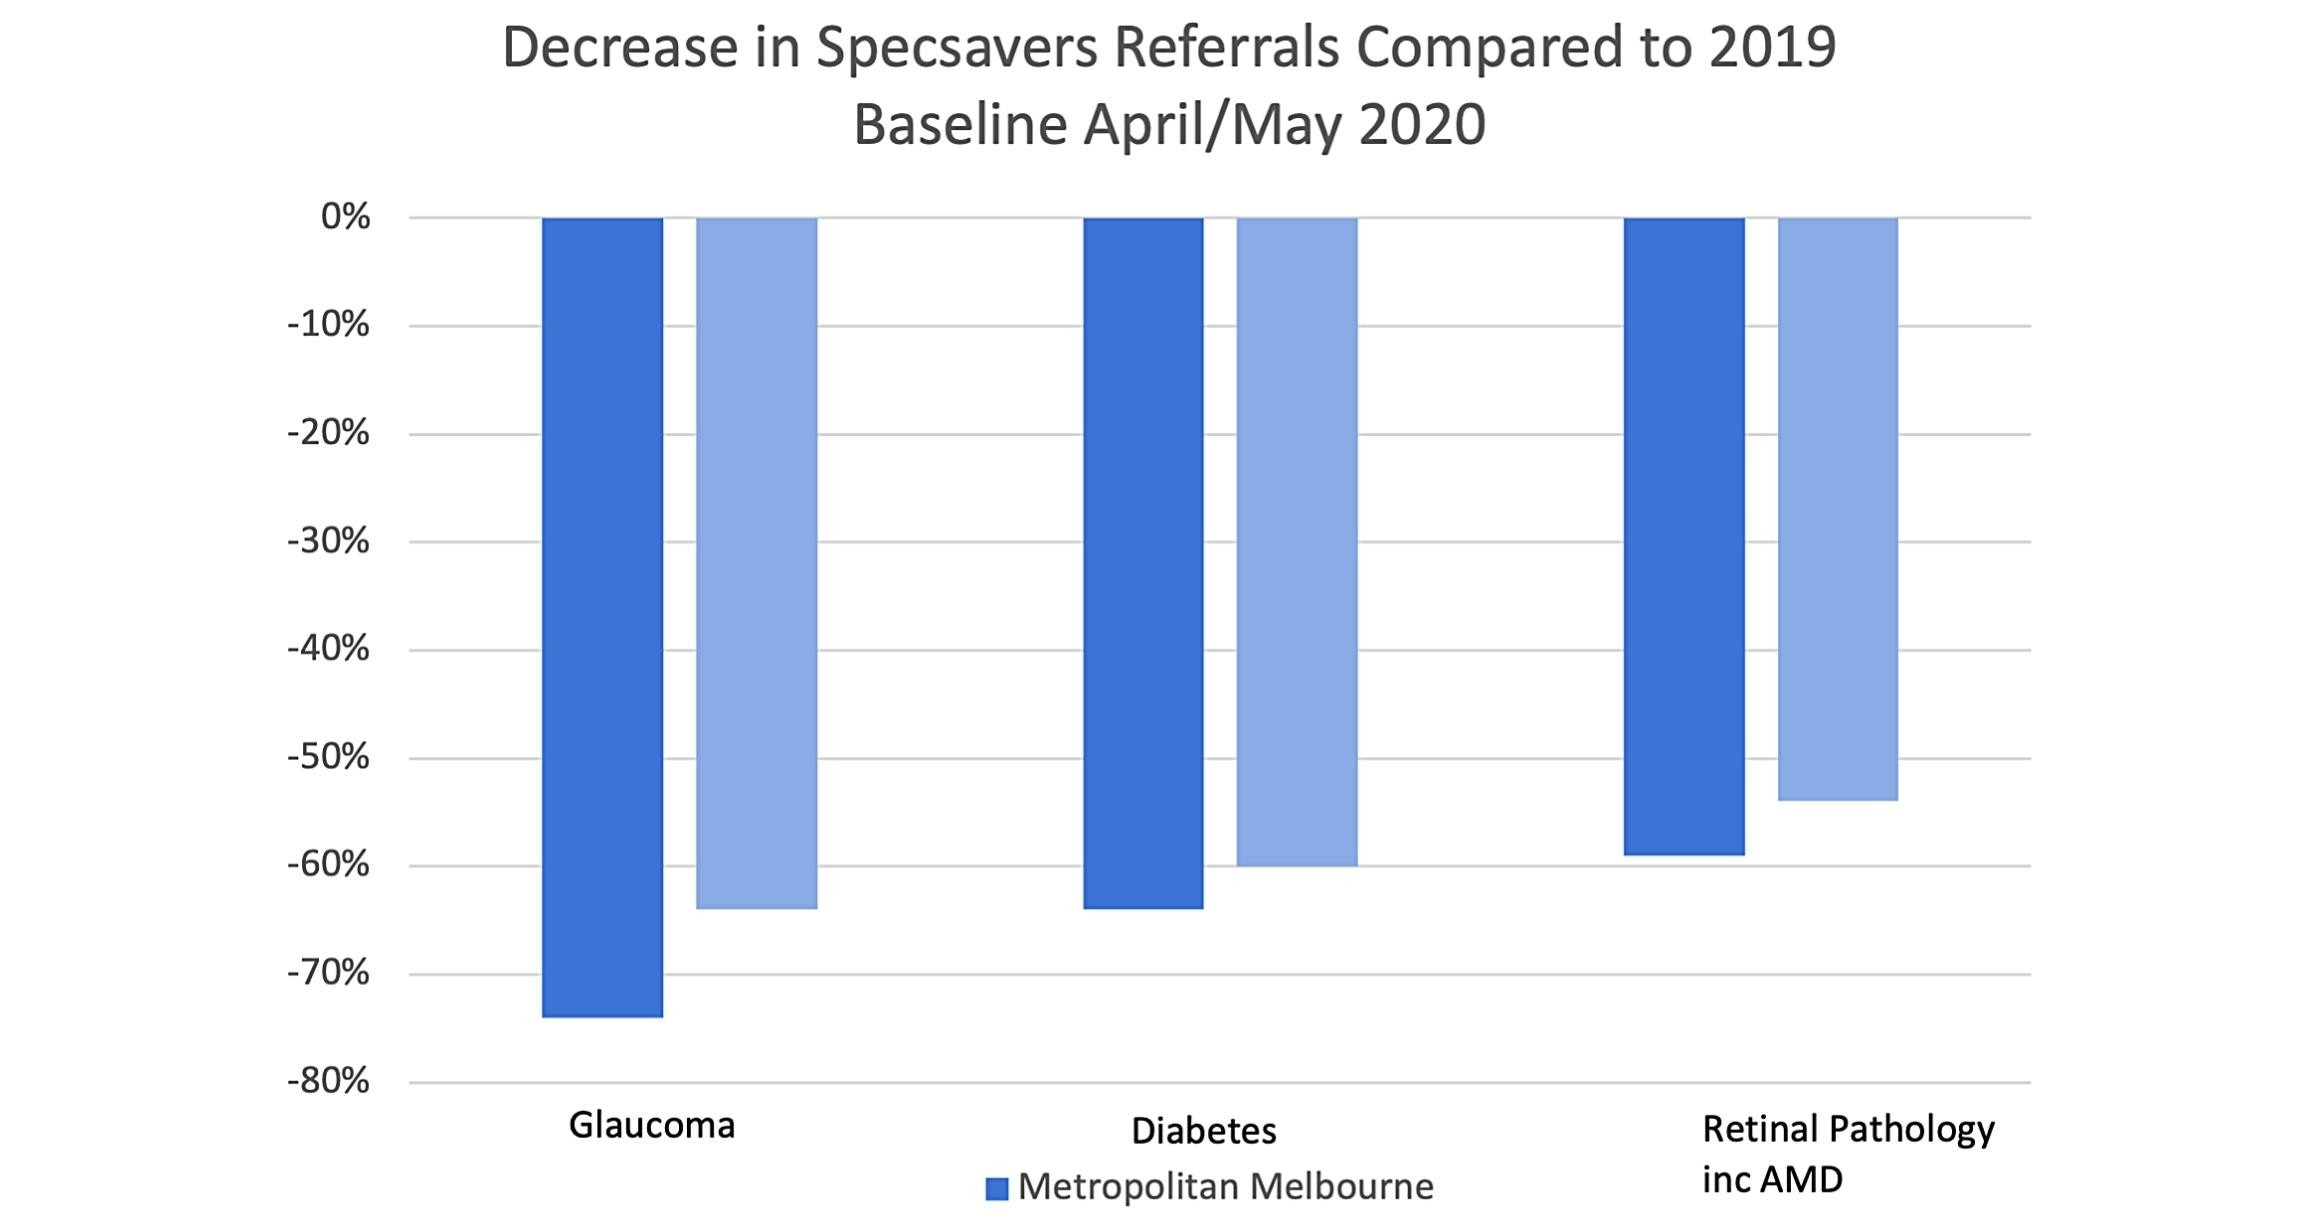 Figure 4. Decrease in referrals compared to 2019 baseline April/May 2020.